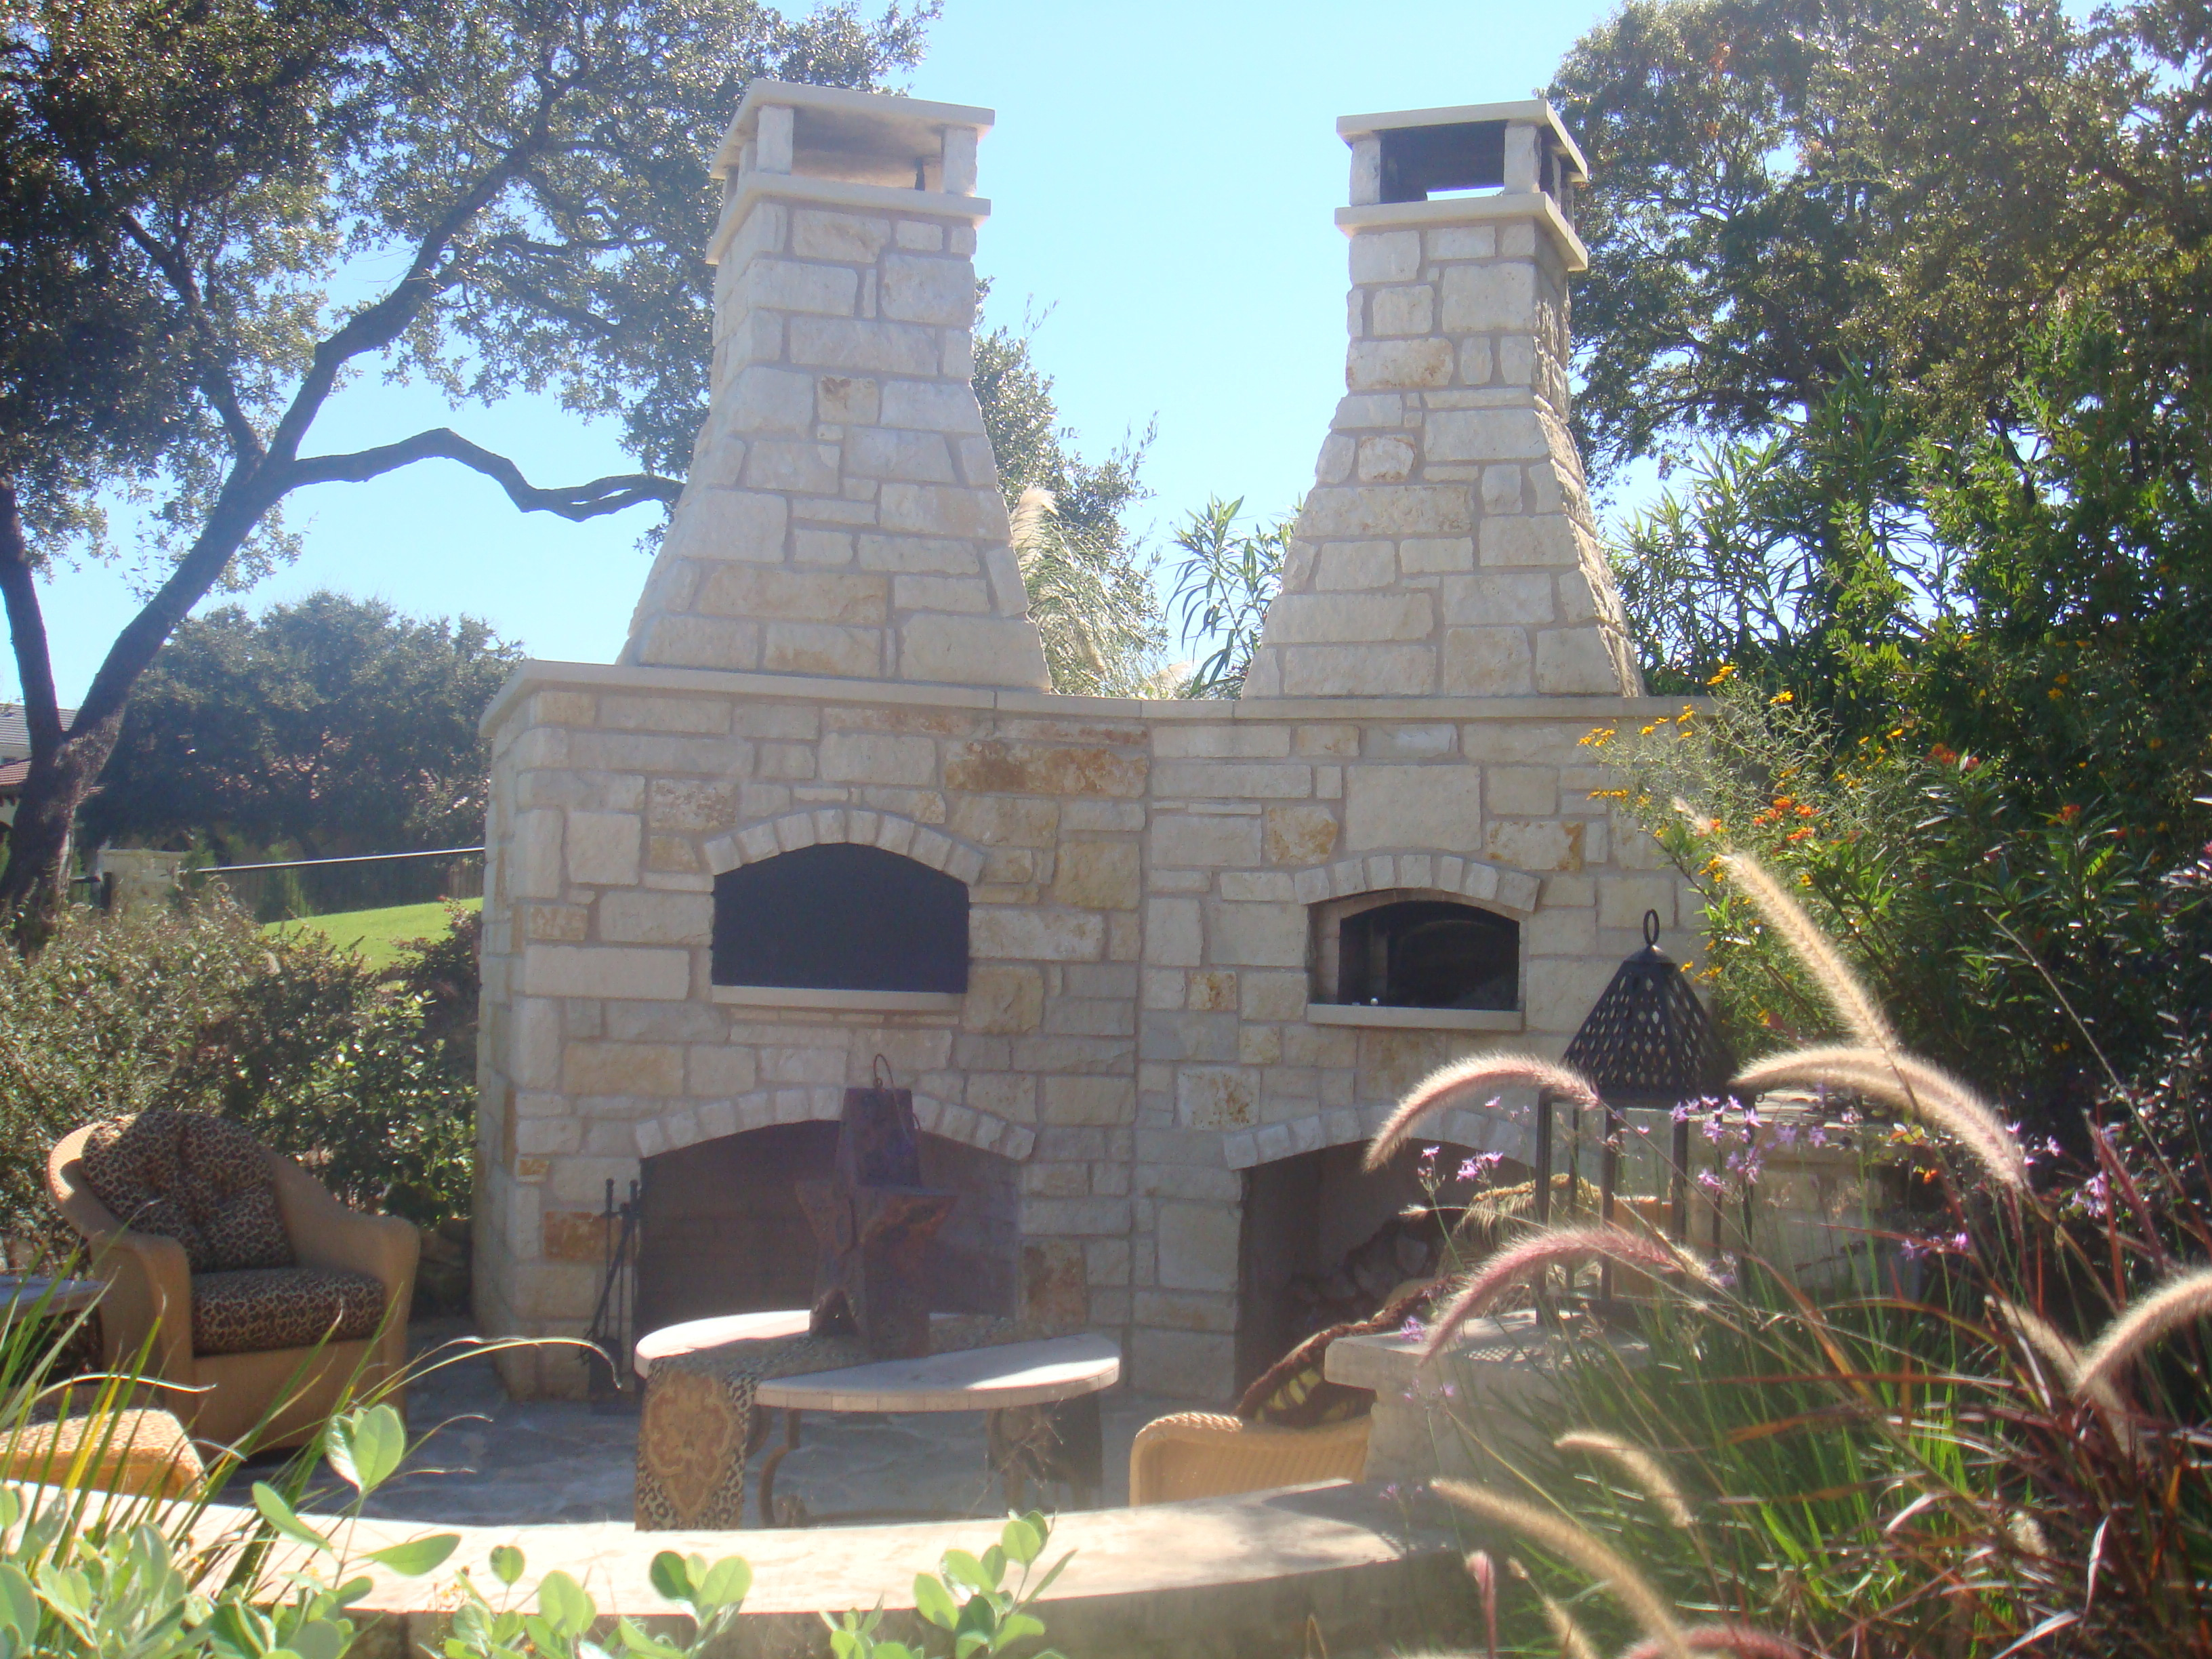 patios with fireplaces. outdoor fireplace and oven on patio with stone steps Outdoor Patios Fireplaces  Firepits JC Stoneworks Masonry